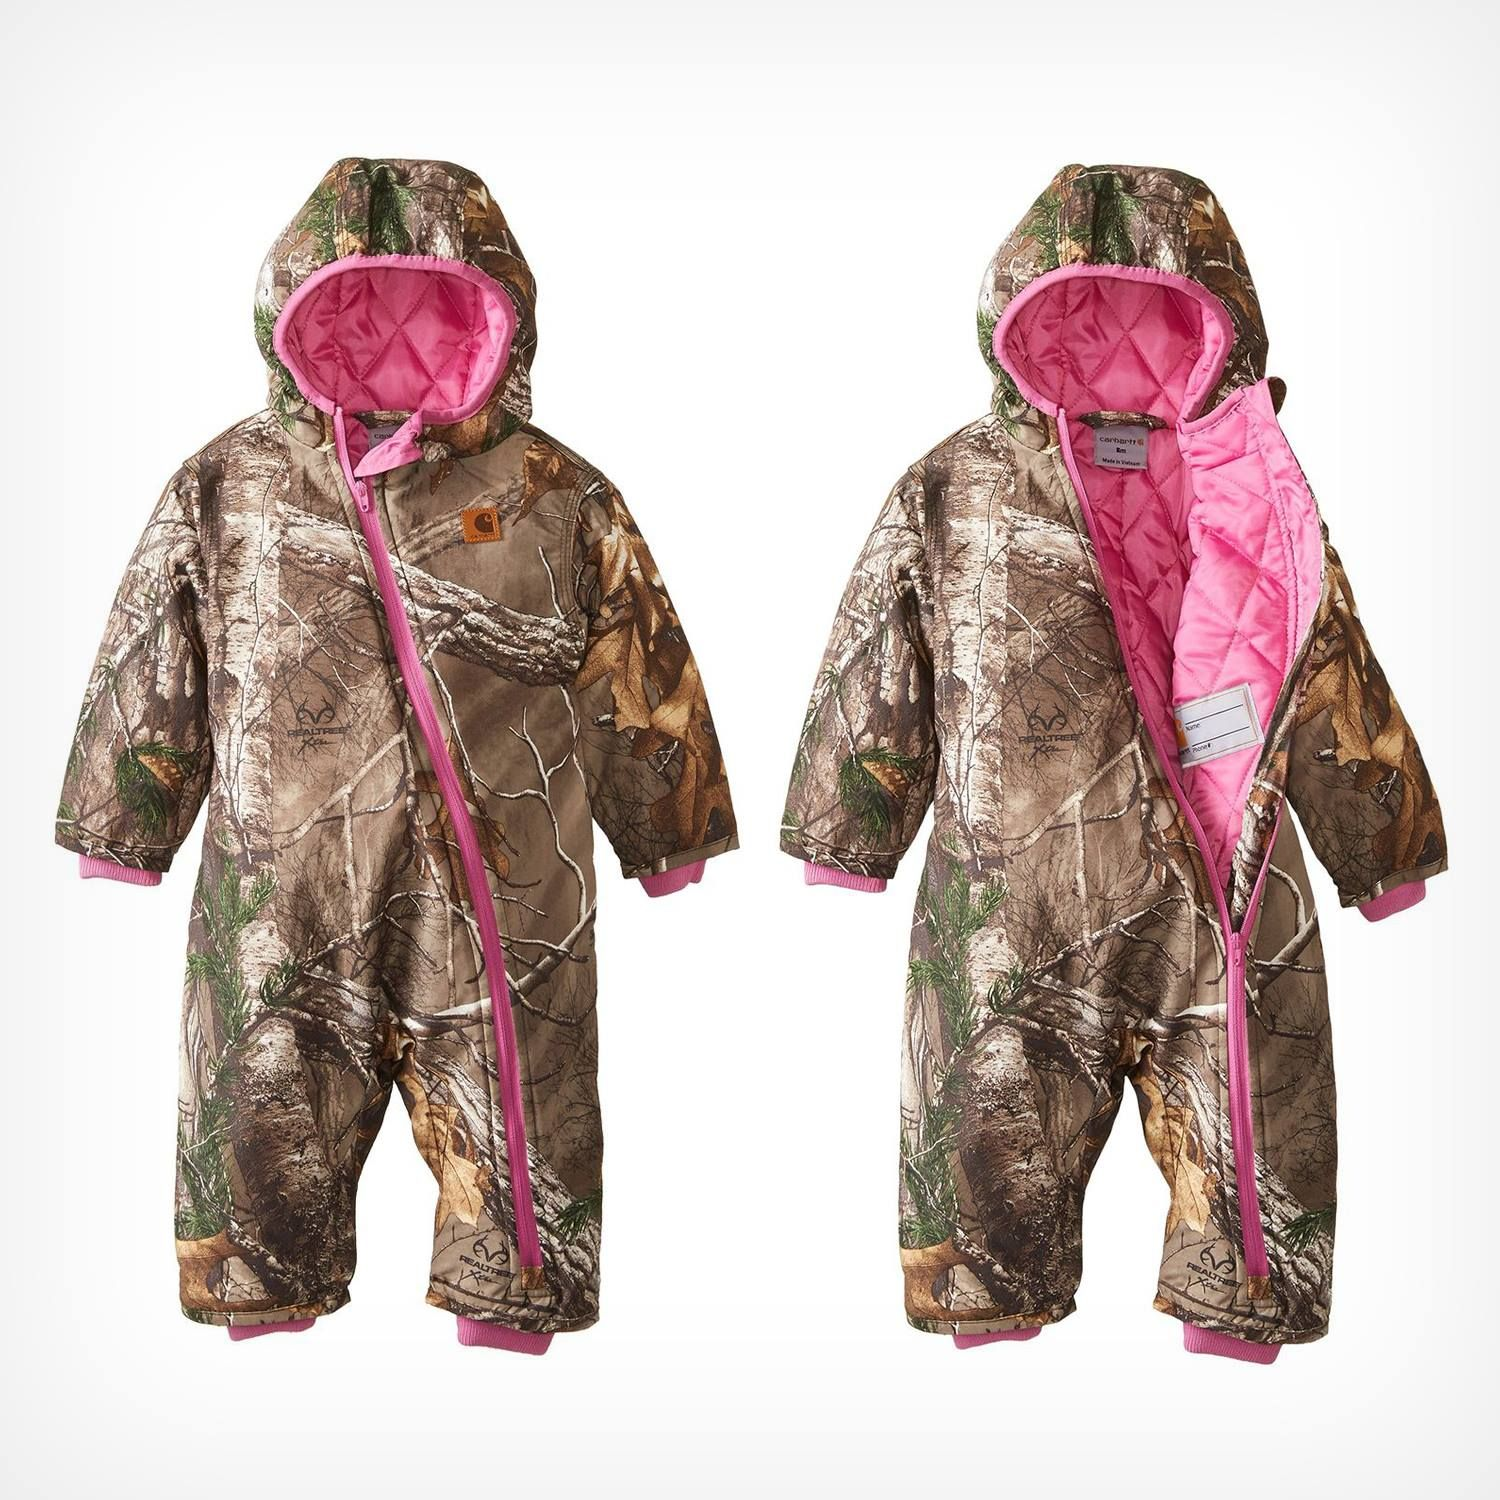 592b8d9ce Realtree Camo Carhart Baby Snow Suit. If we ever have a baby, I hope it's a  girl so she can wear this!!